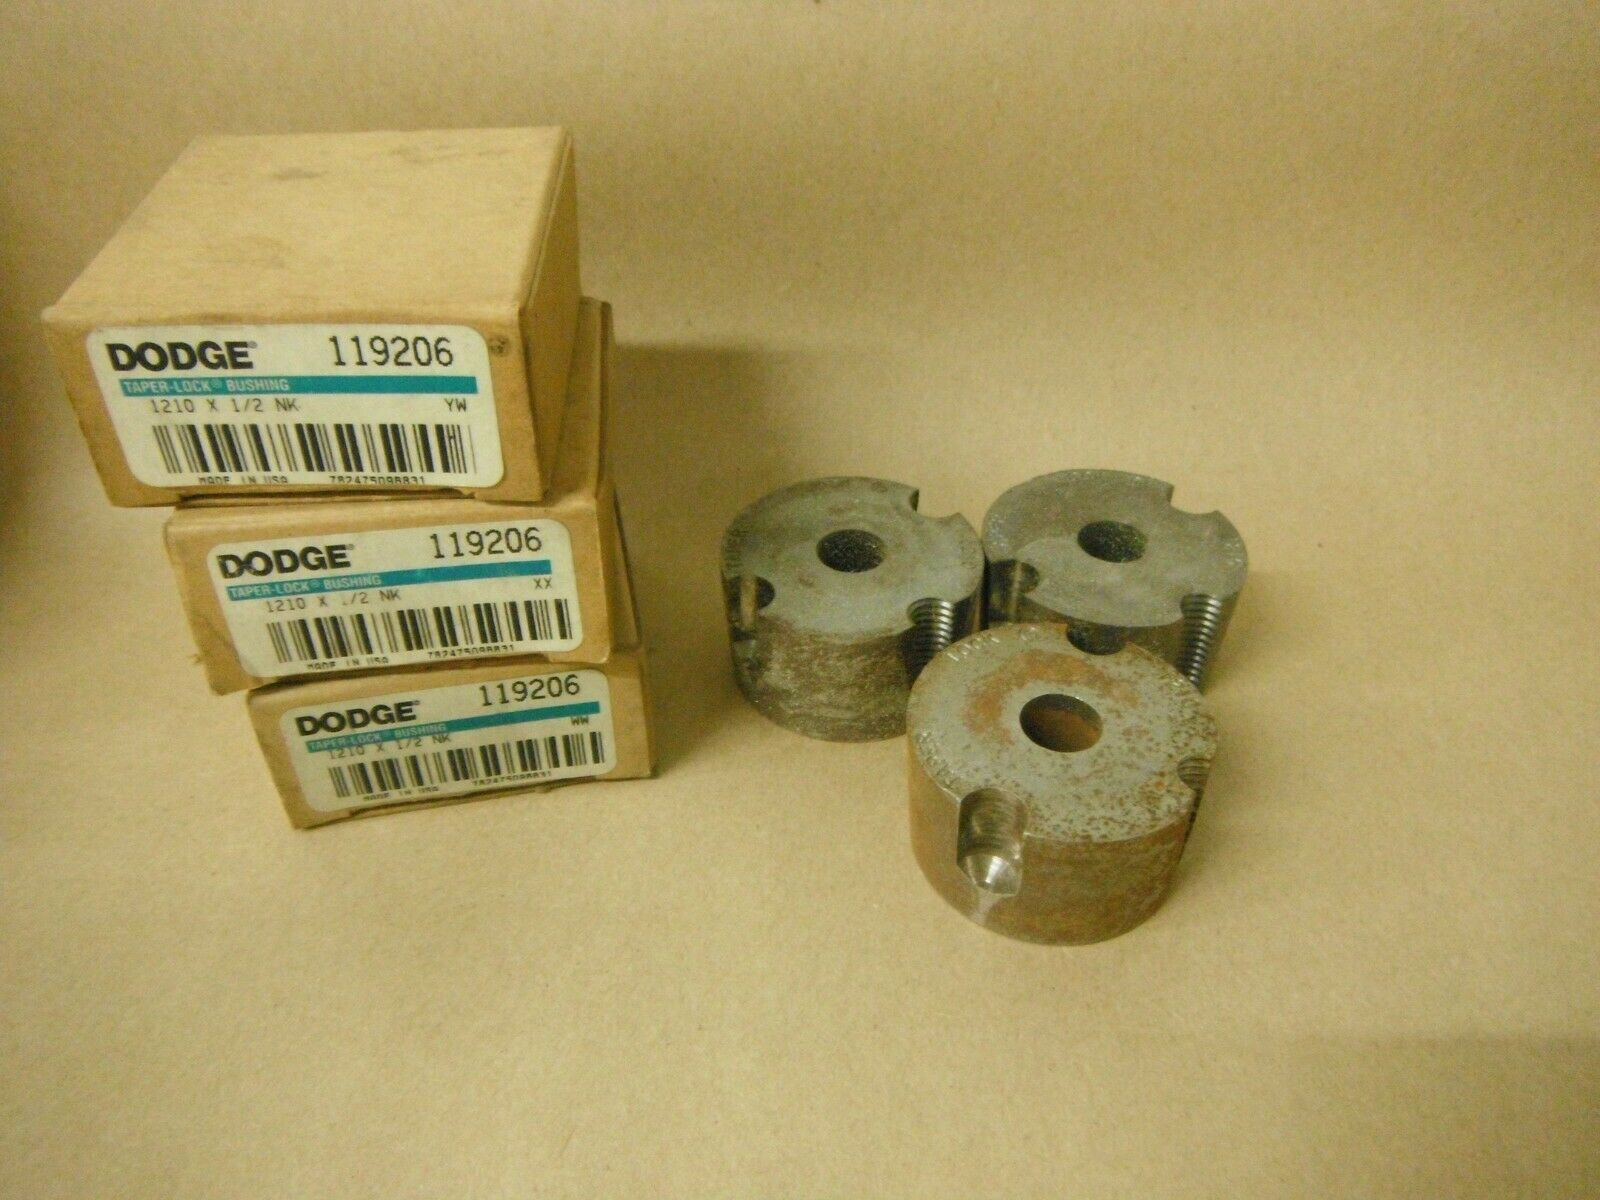 Primary image for (Qty 3) DODGE 119206 1210X1/2 TAPER LOCK BUSHING